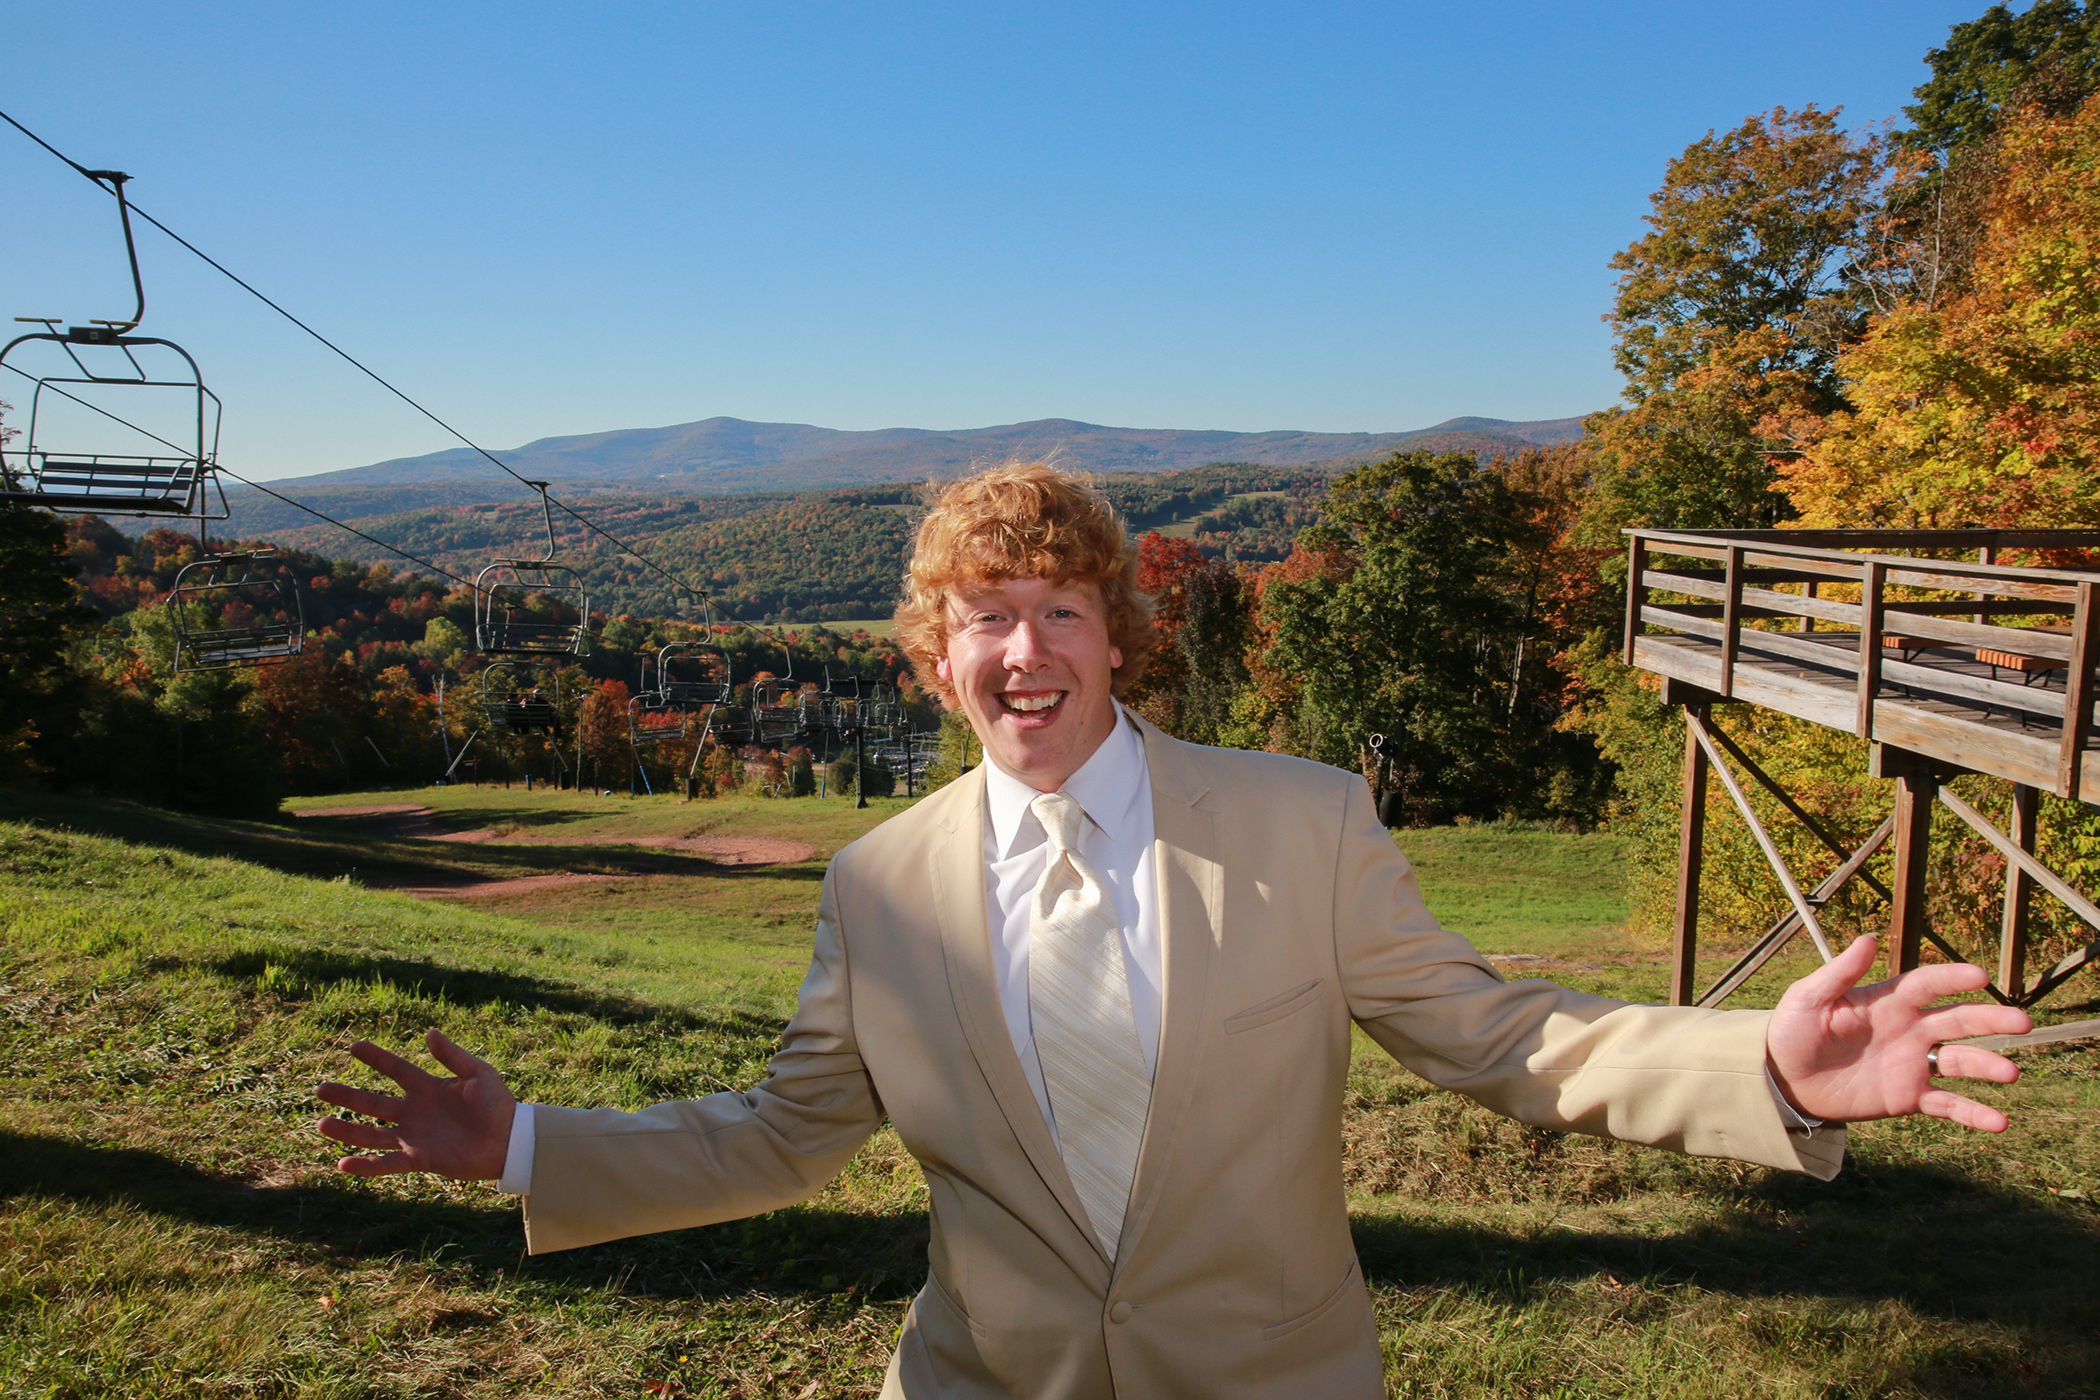 Groom portrait at Windham Moutain NY